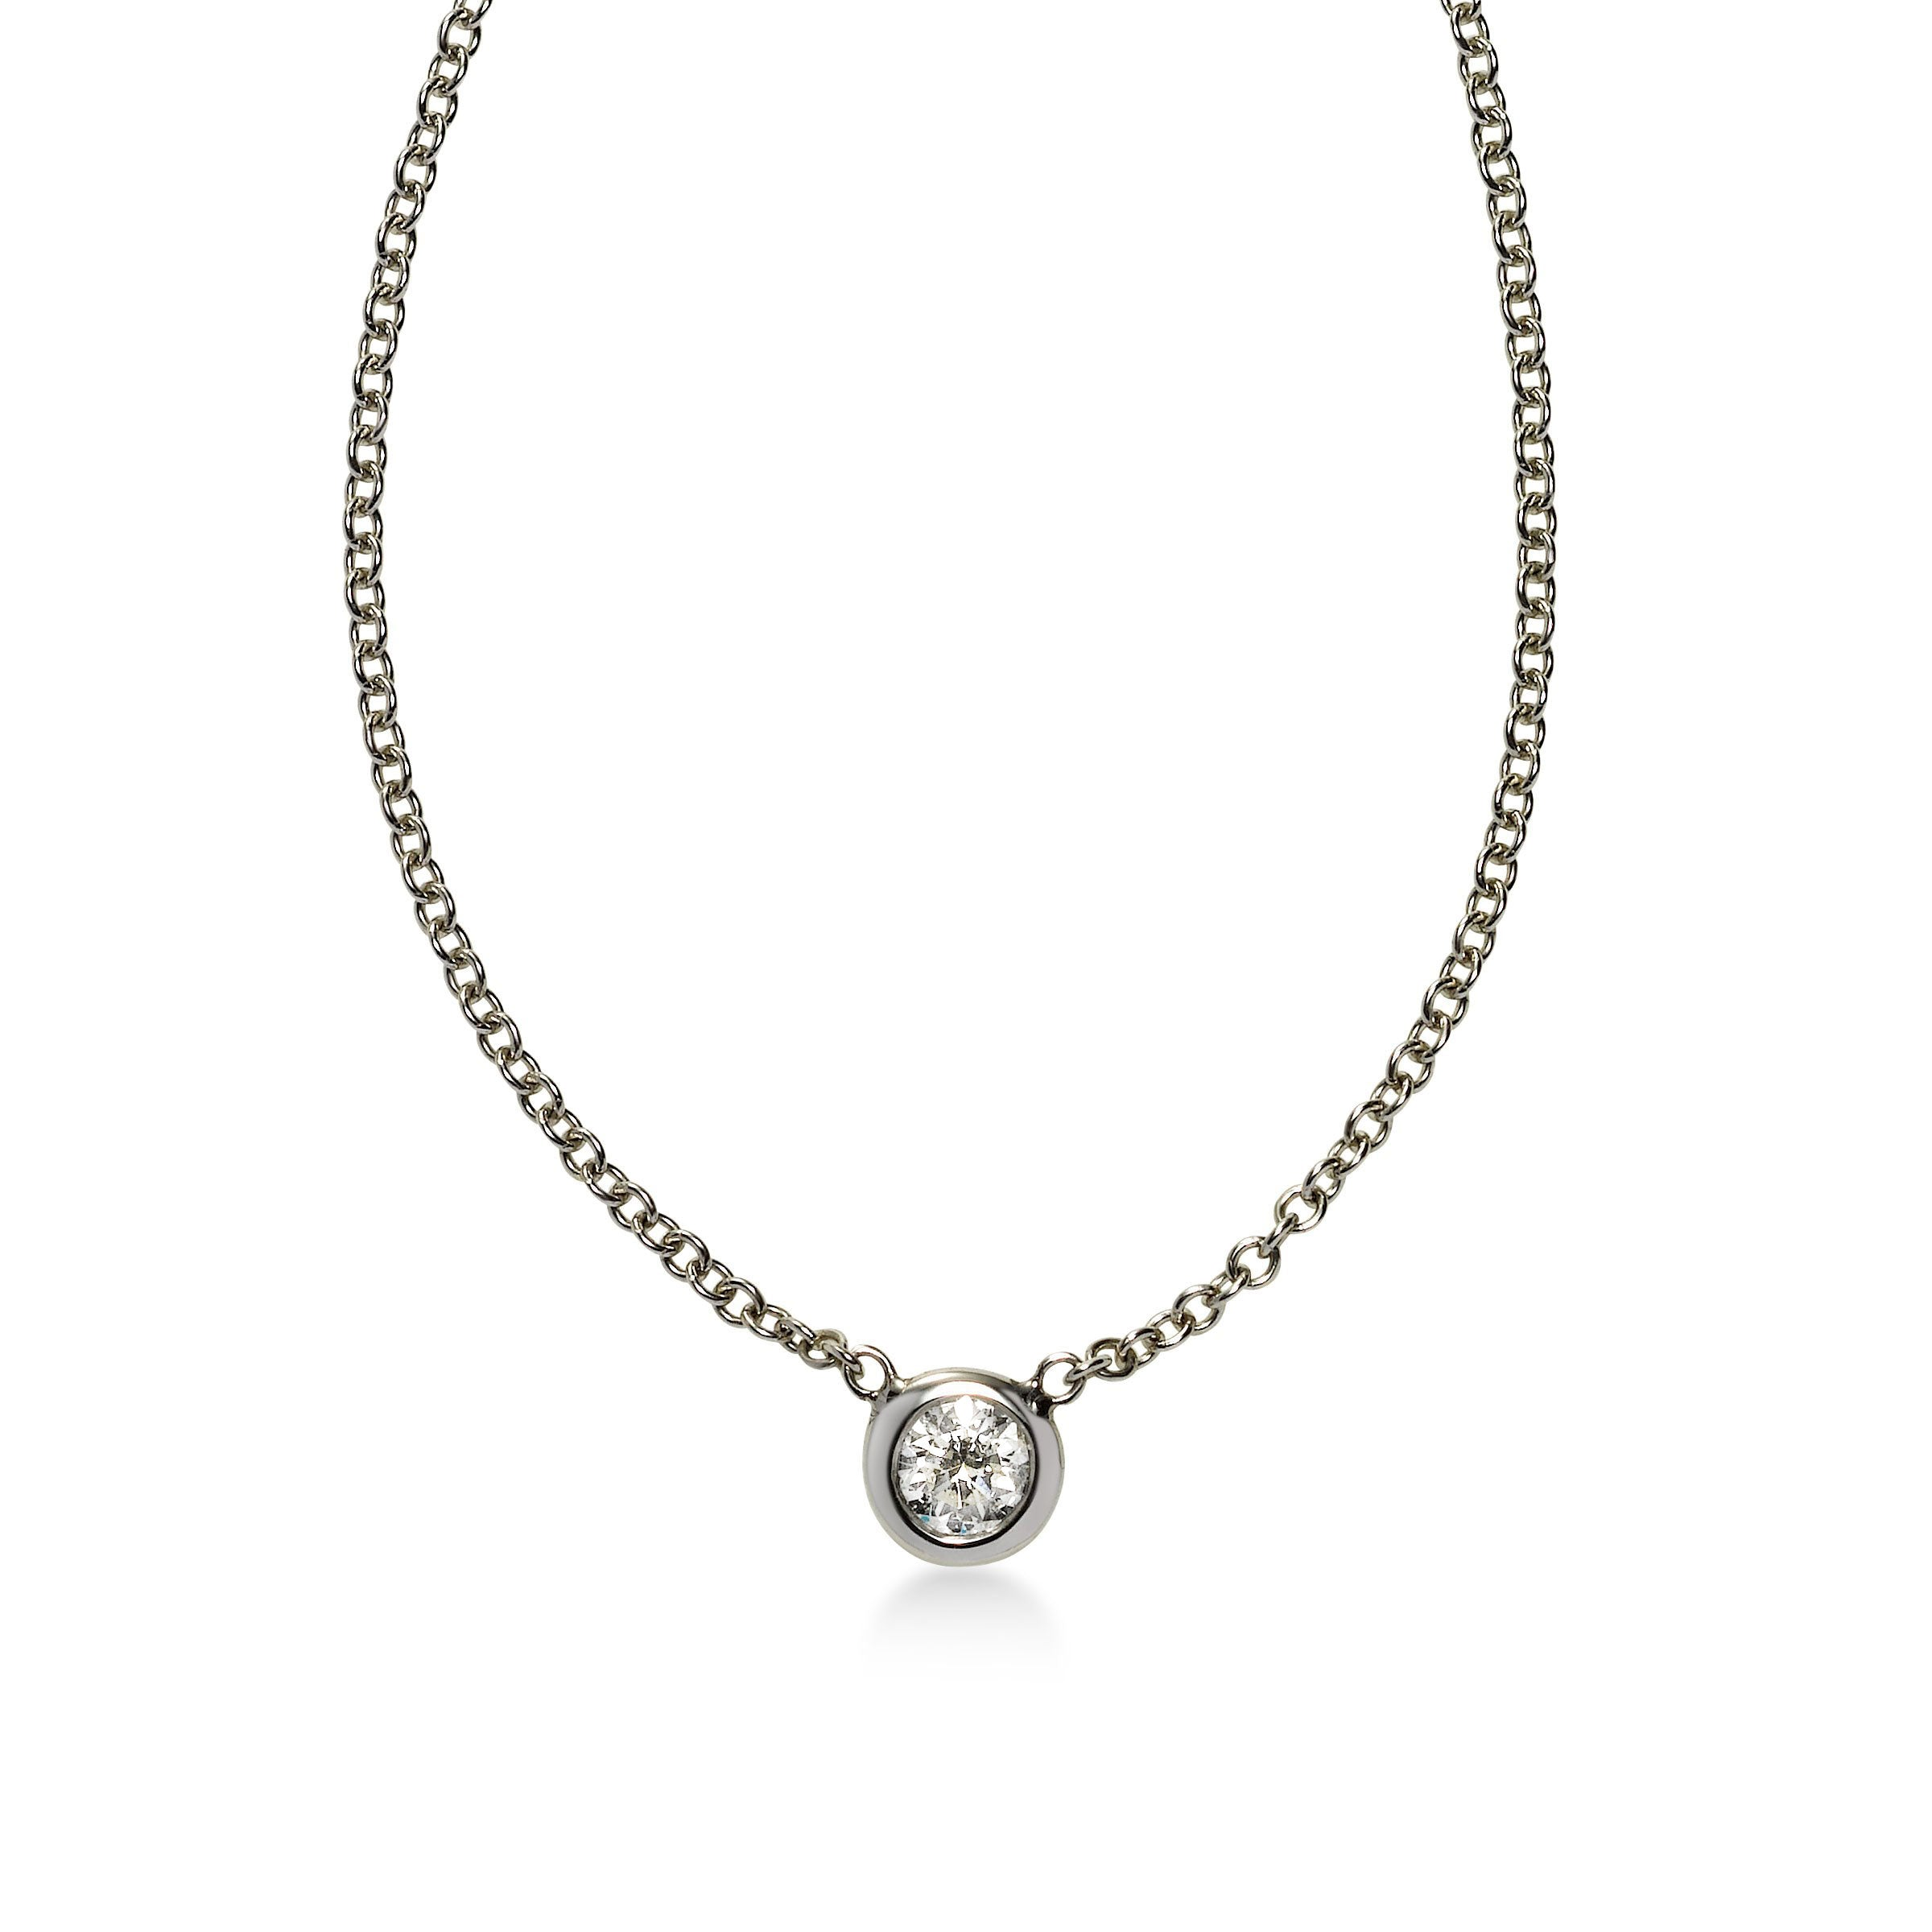 Bezel Set Diamond Solitaire Necklace, .30 Carat, Platinum